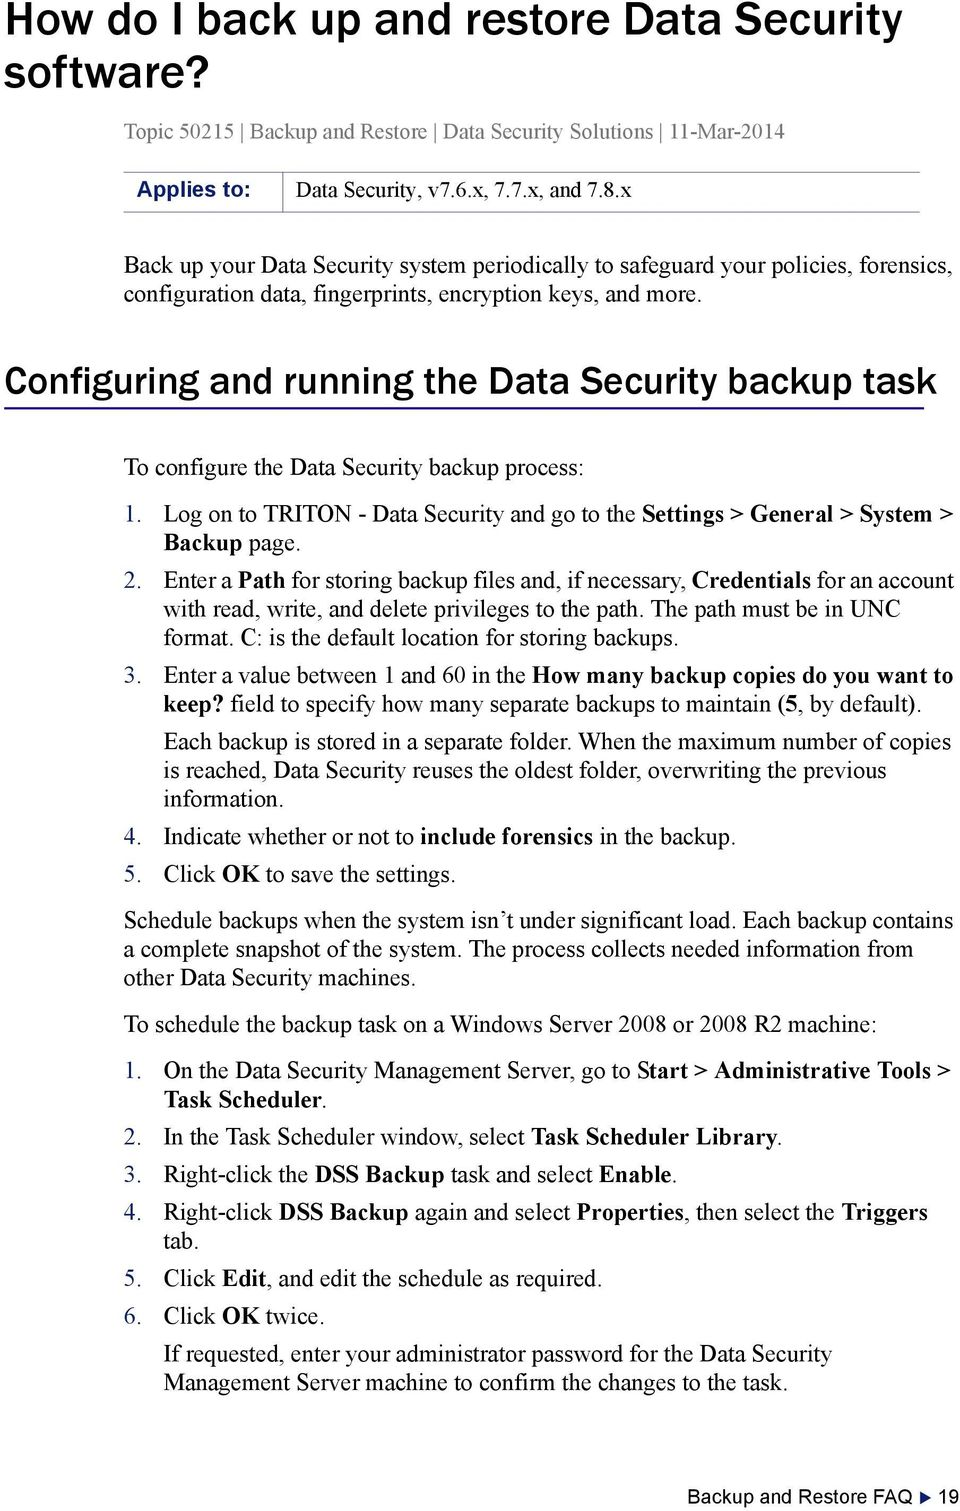 Configuring and running the Data Security backup task To configure the Data Security backup process: 1. Log on to TRITON - Data Security and go to the Settings > General > System > Backup page. 2.